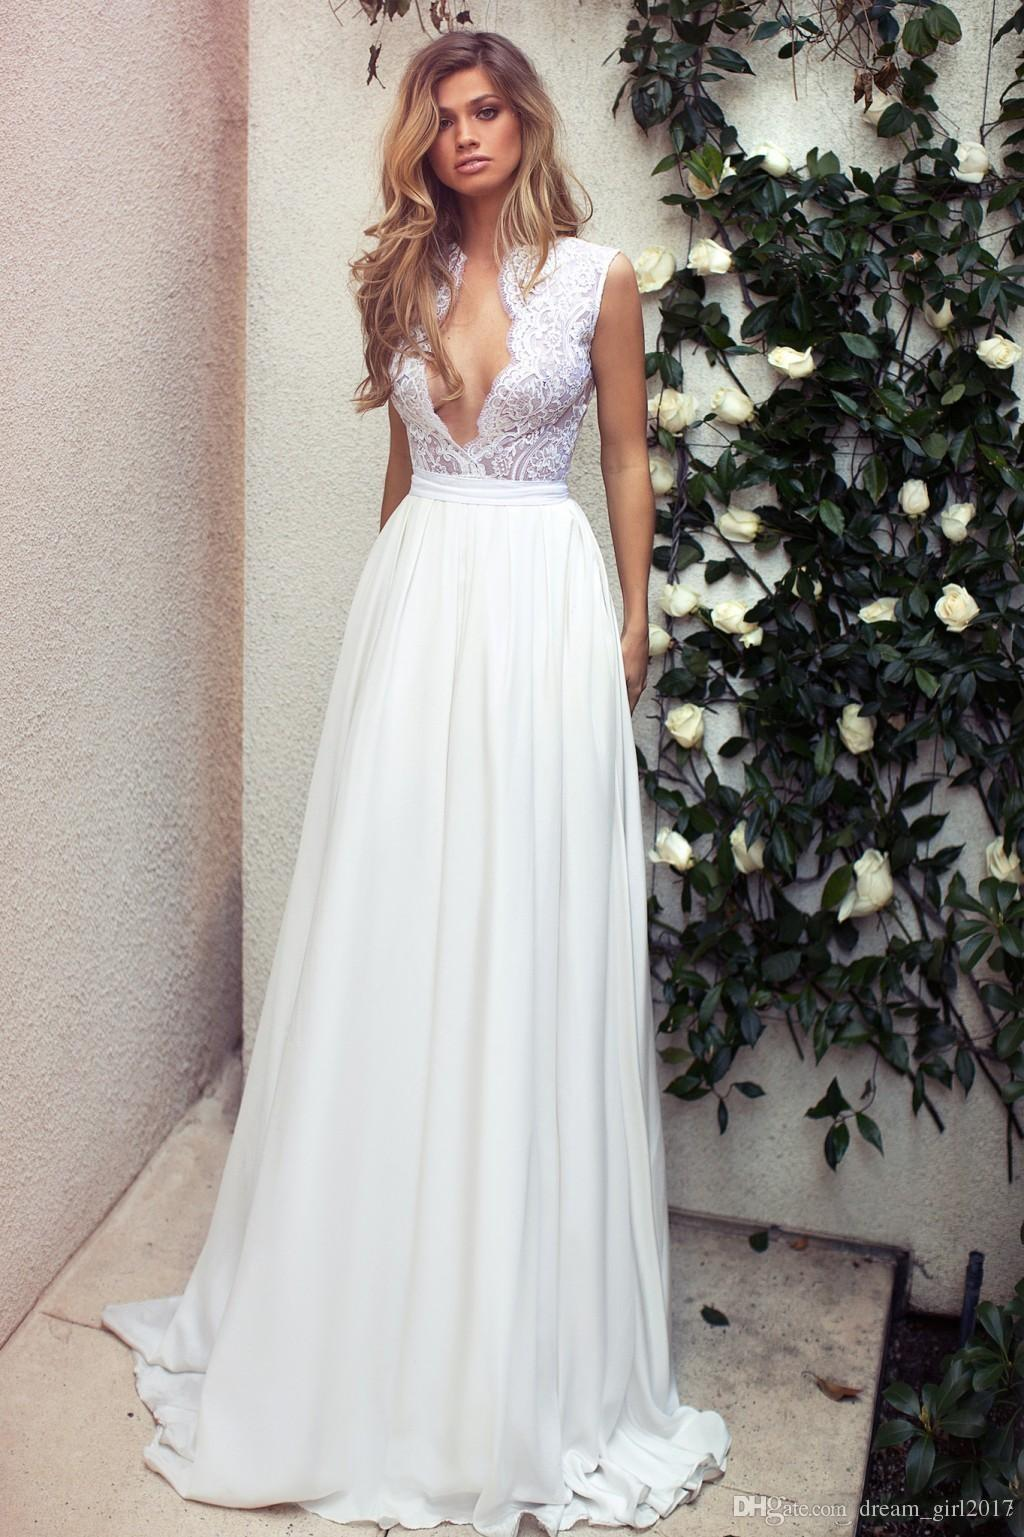 5ccb721e6e Mini 20short 20chiffon 20beach 20wedding 20dresses 20illusion 20lace  20plunging 20neckline 20sleeveless 20backless 20bridal 20gowns 20a line